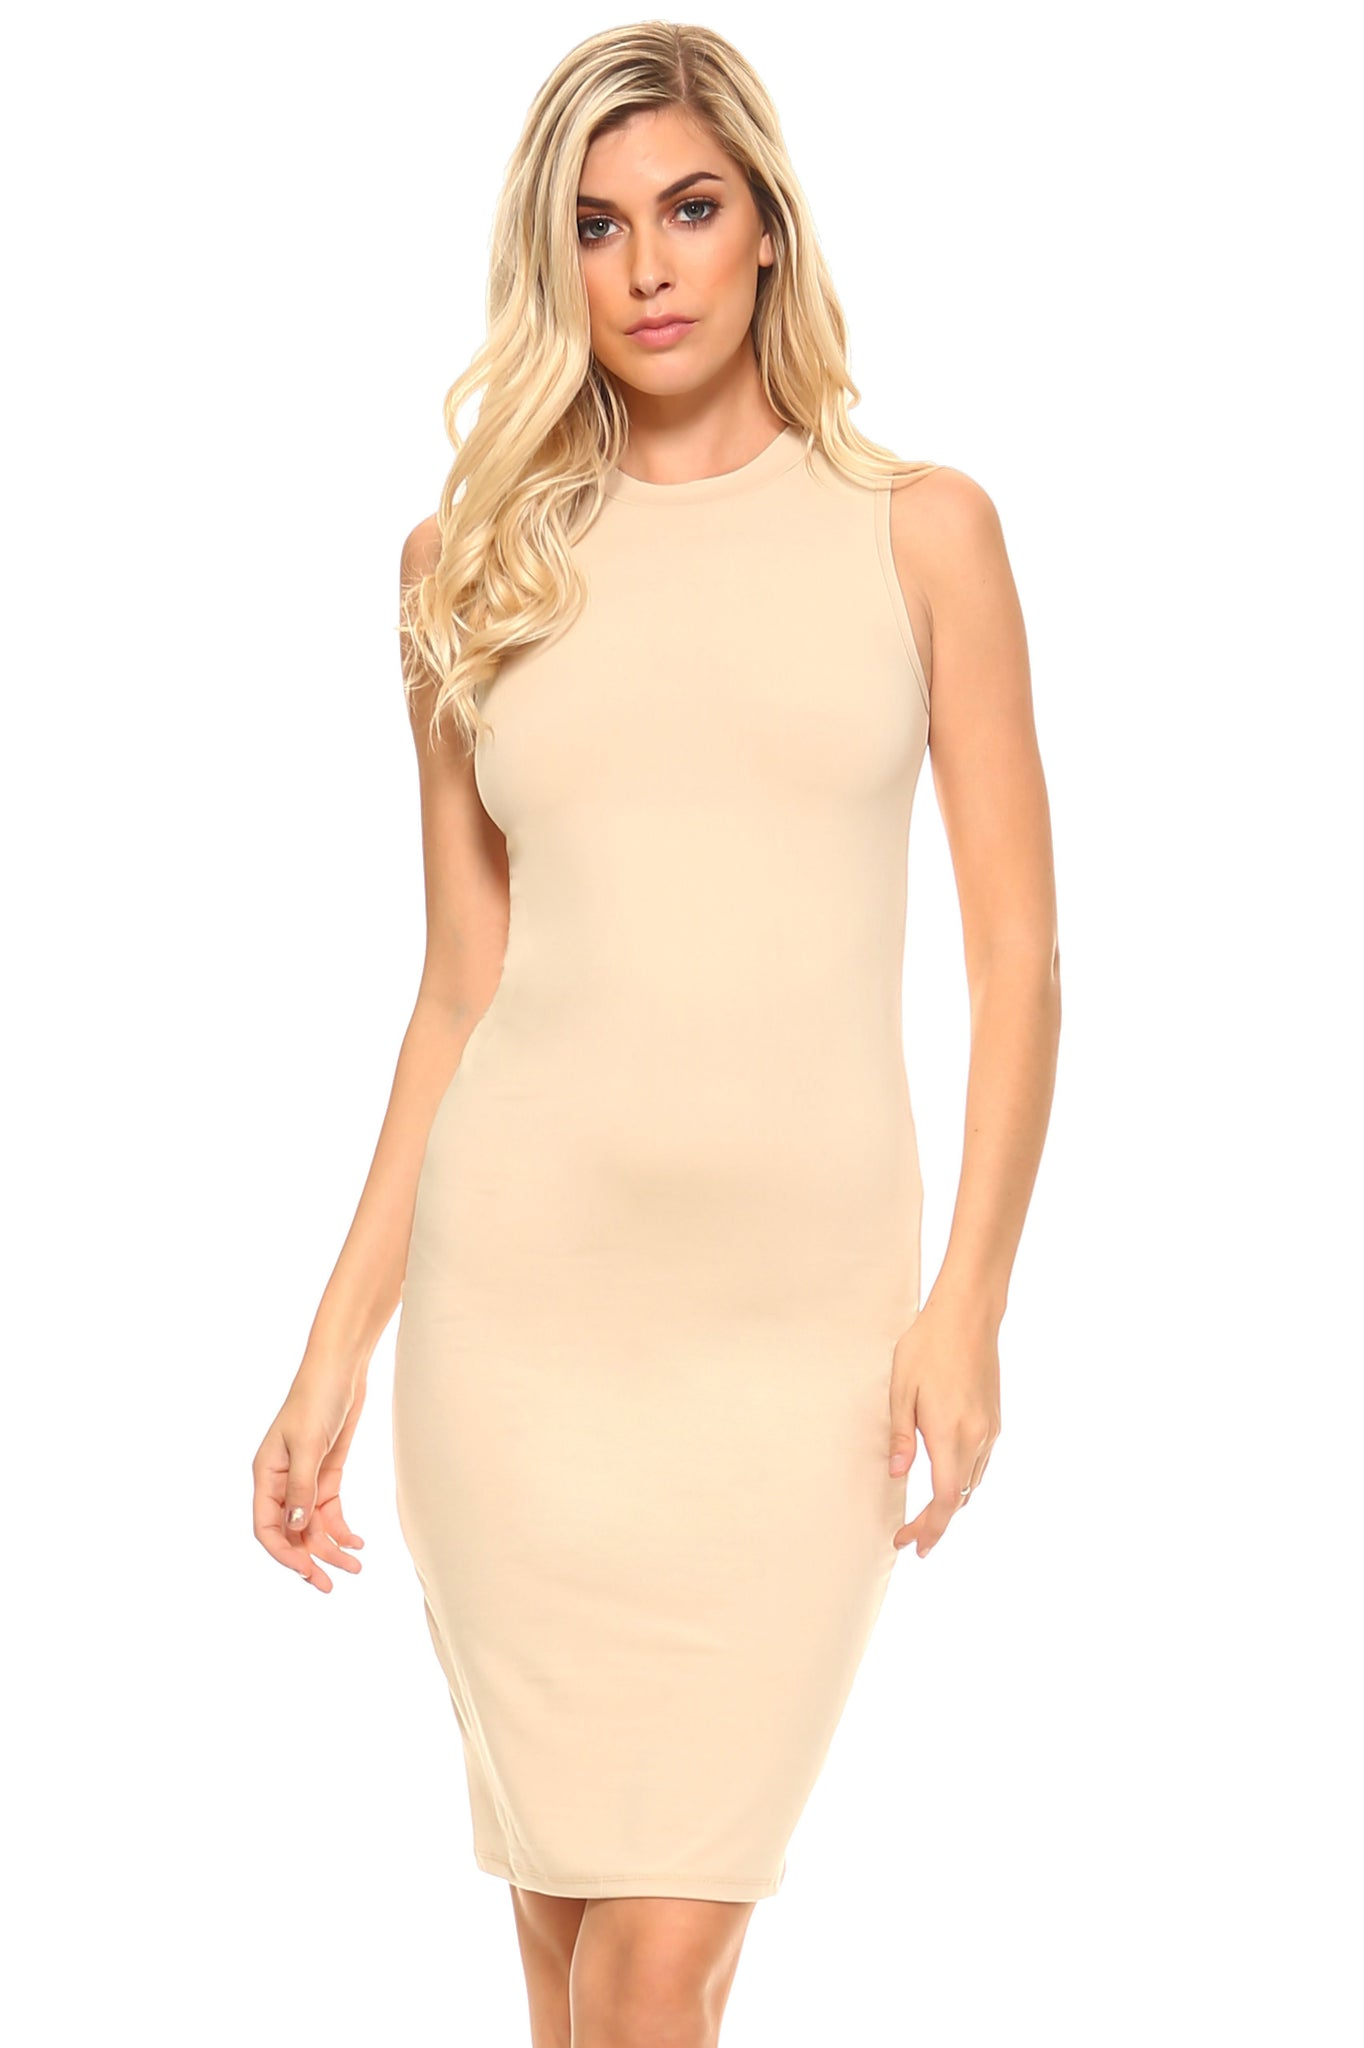 Jennifer High Neck Sleeveless Dress-August Bee